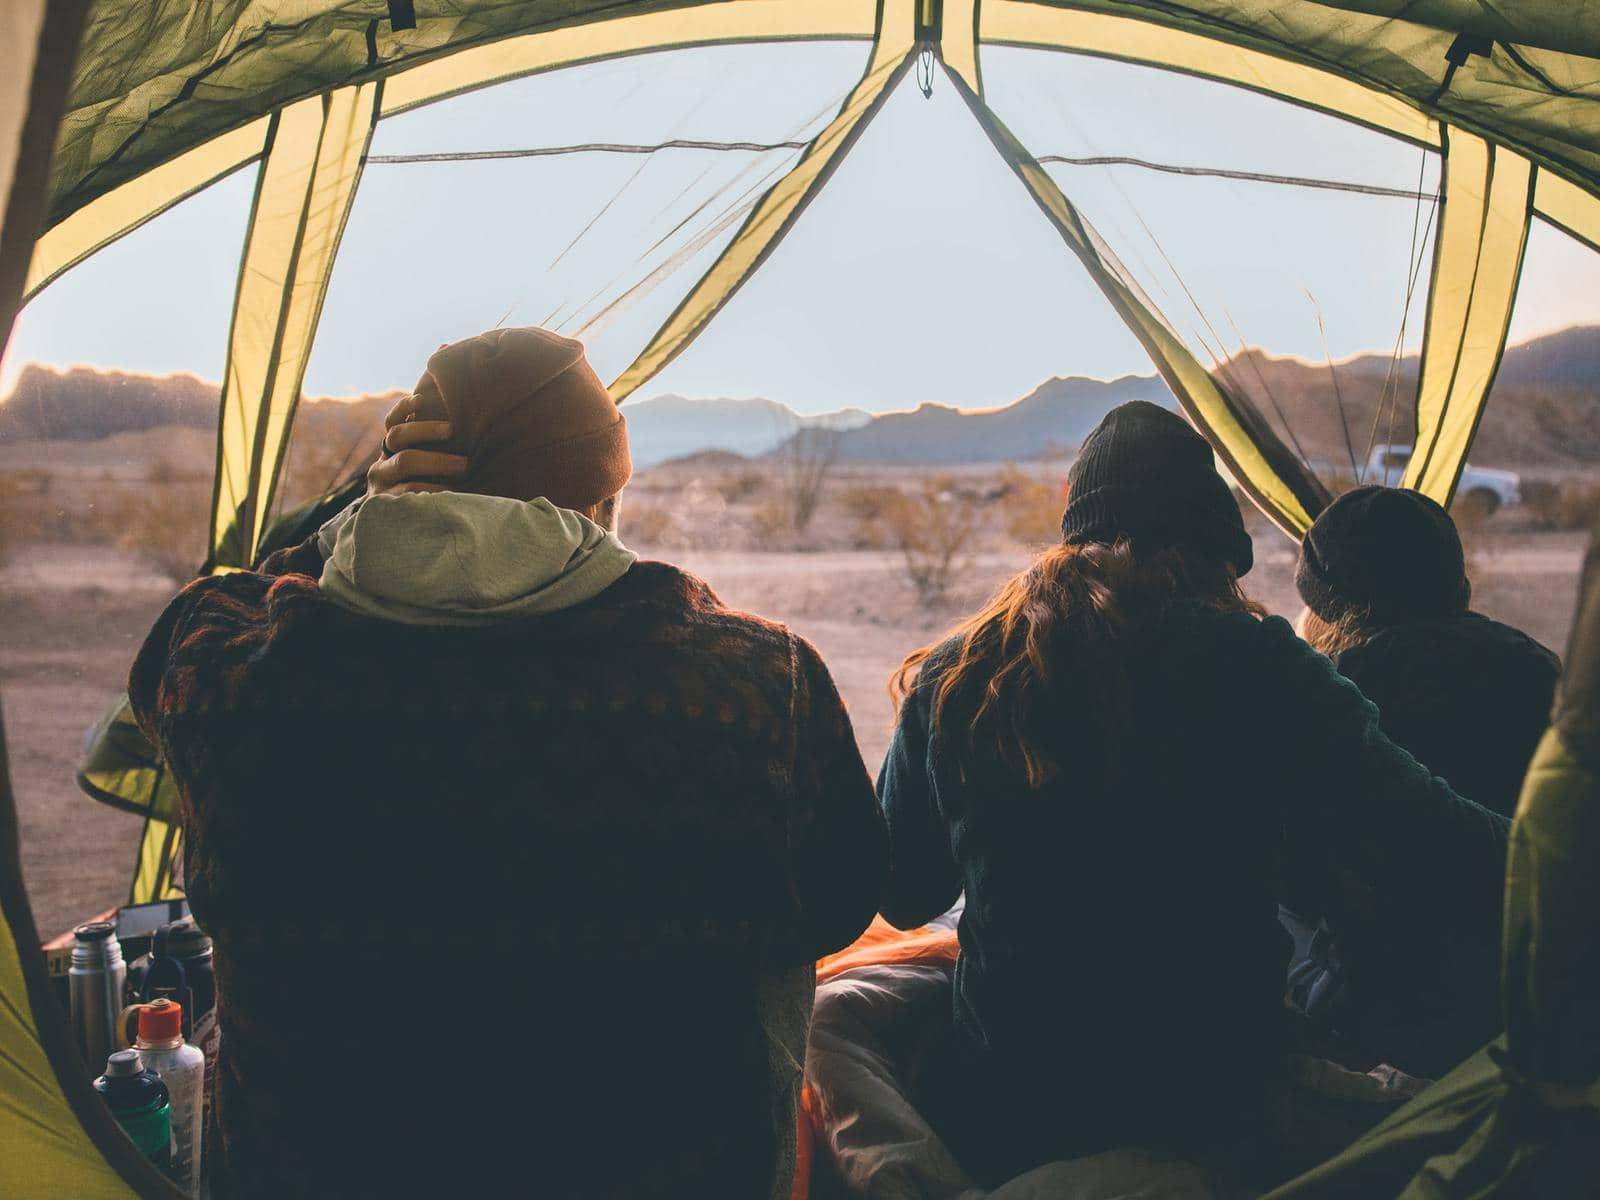 a family of three looking out from a yellow see through tent